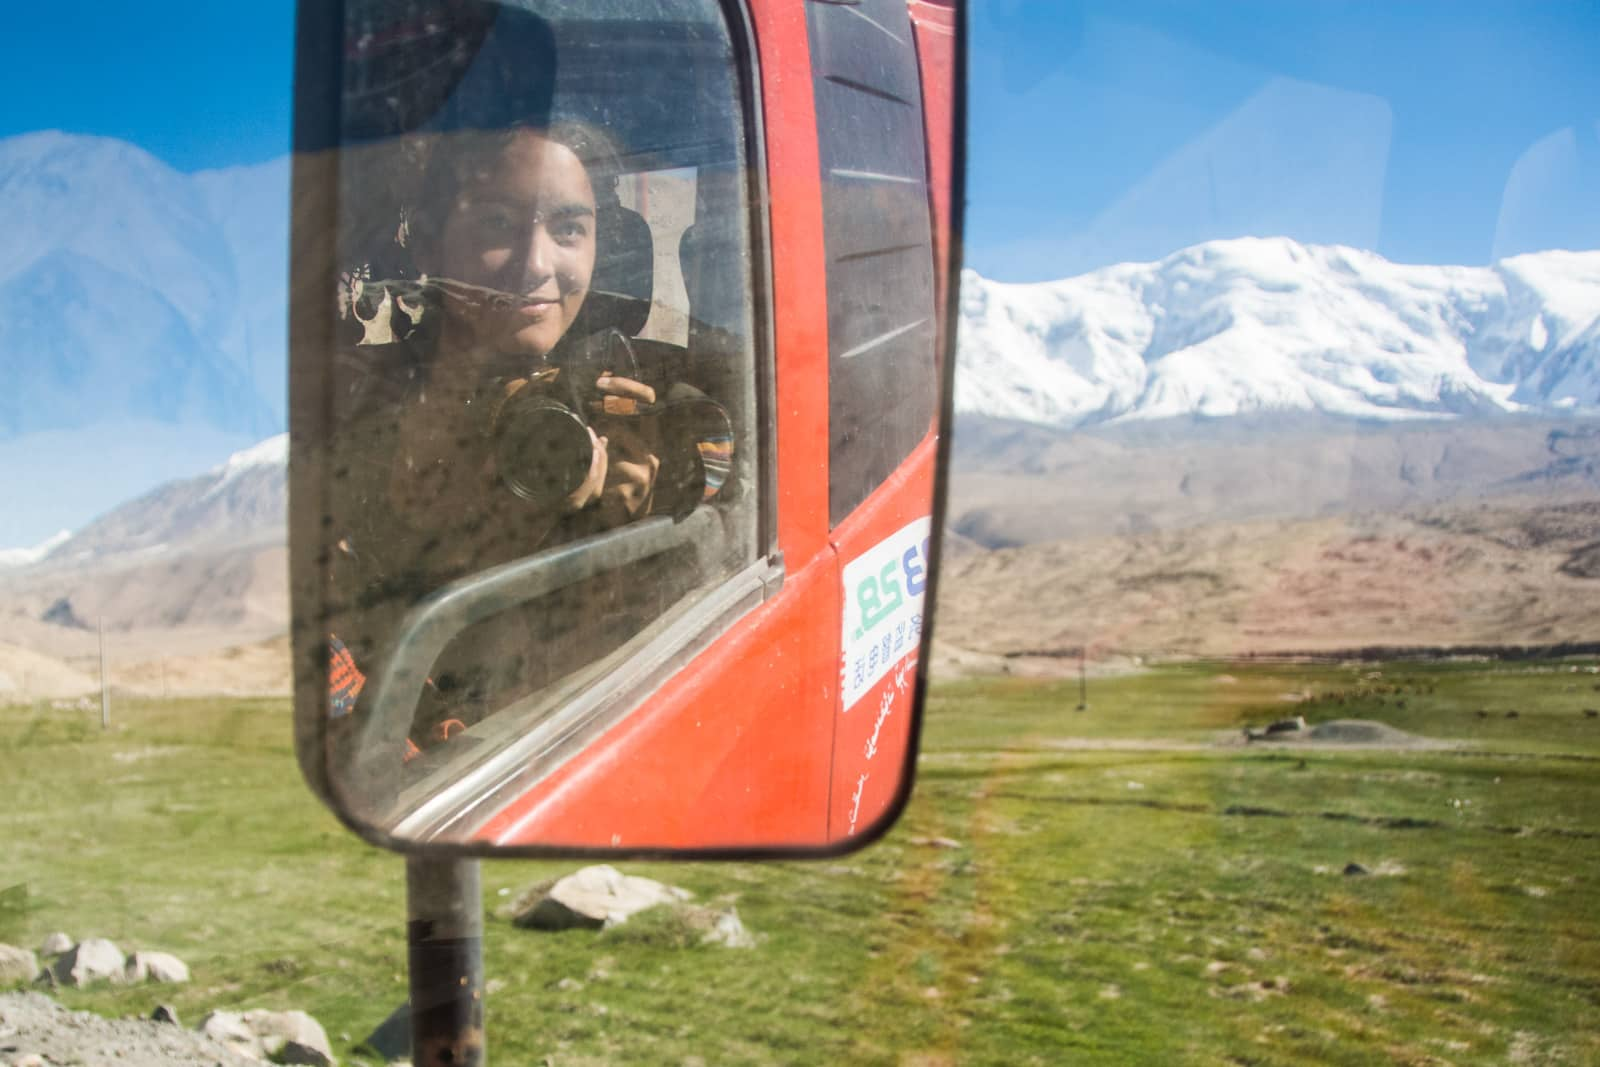 What is Lost With Purpose? - Hitchhiking in Xinjiang, China